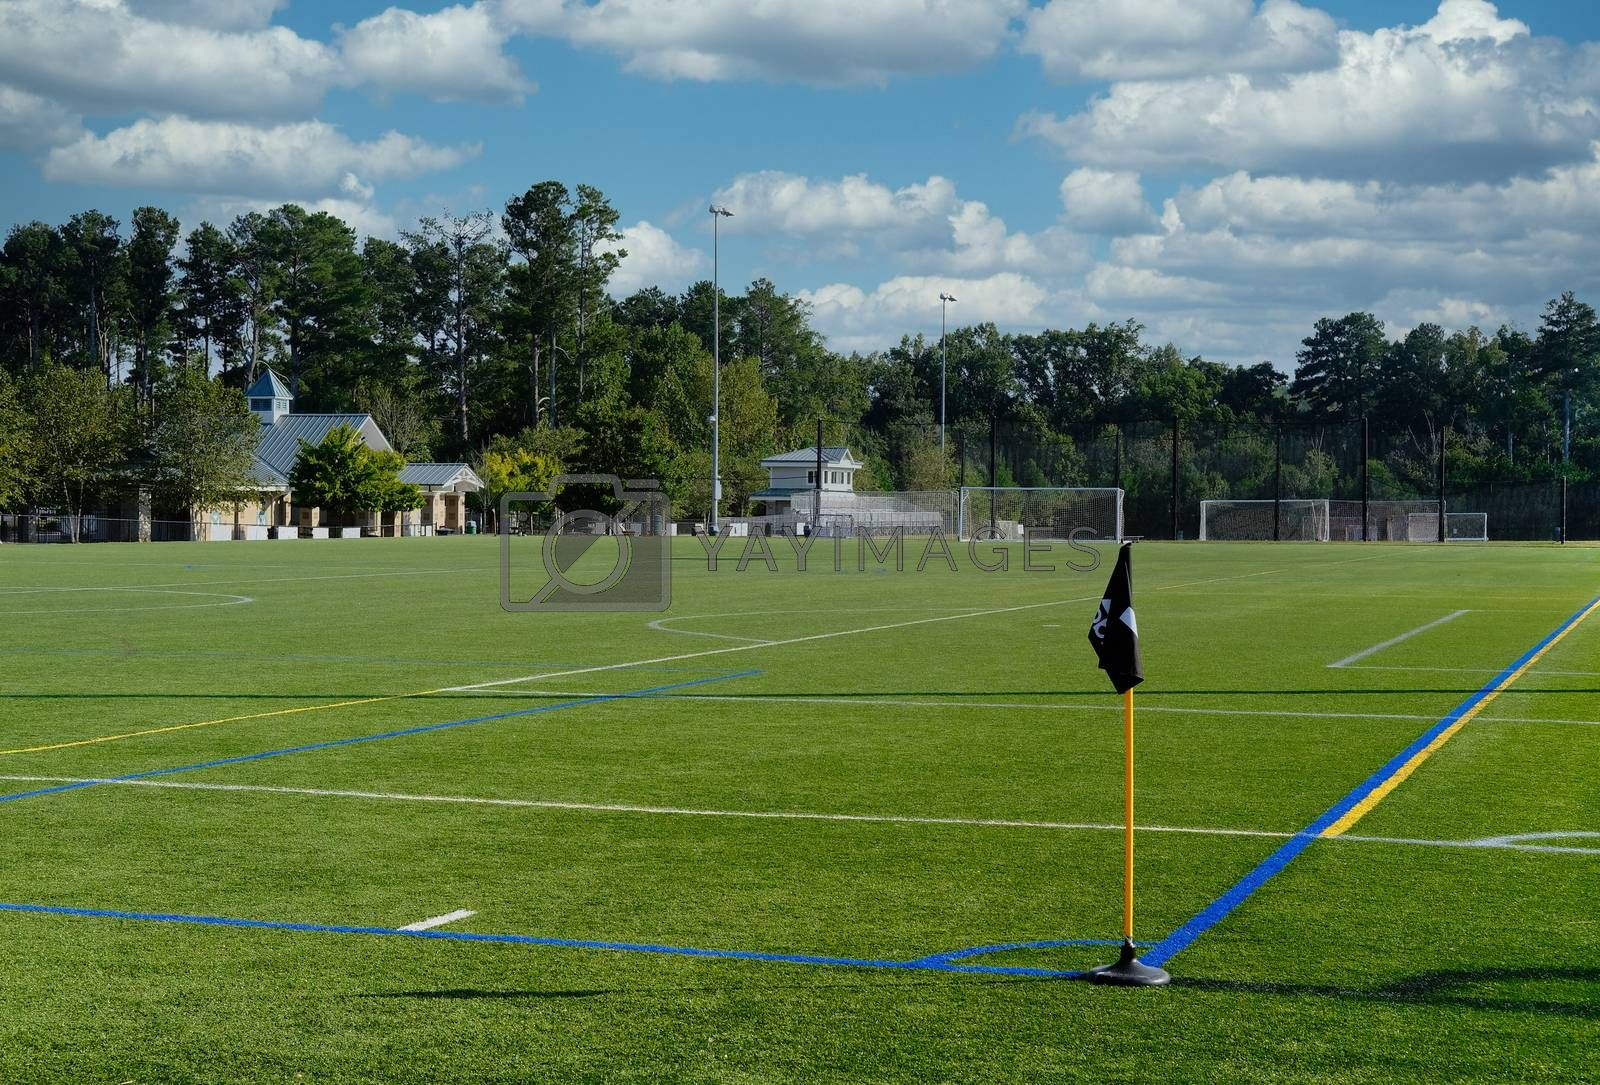 Freshly Marked Soccer Field with Green Grass